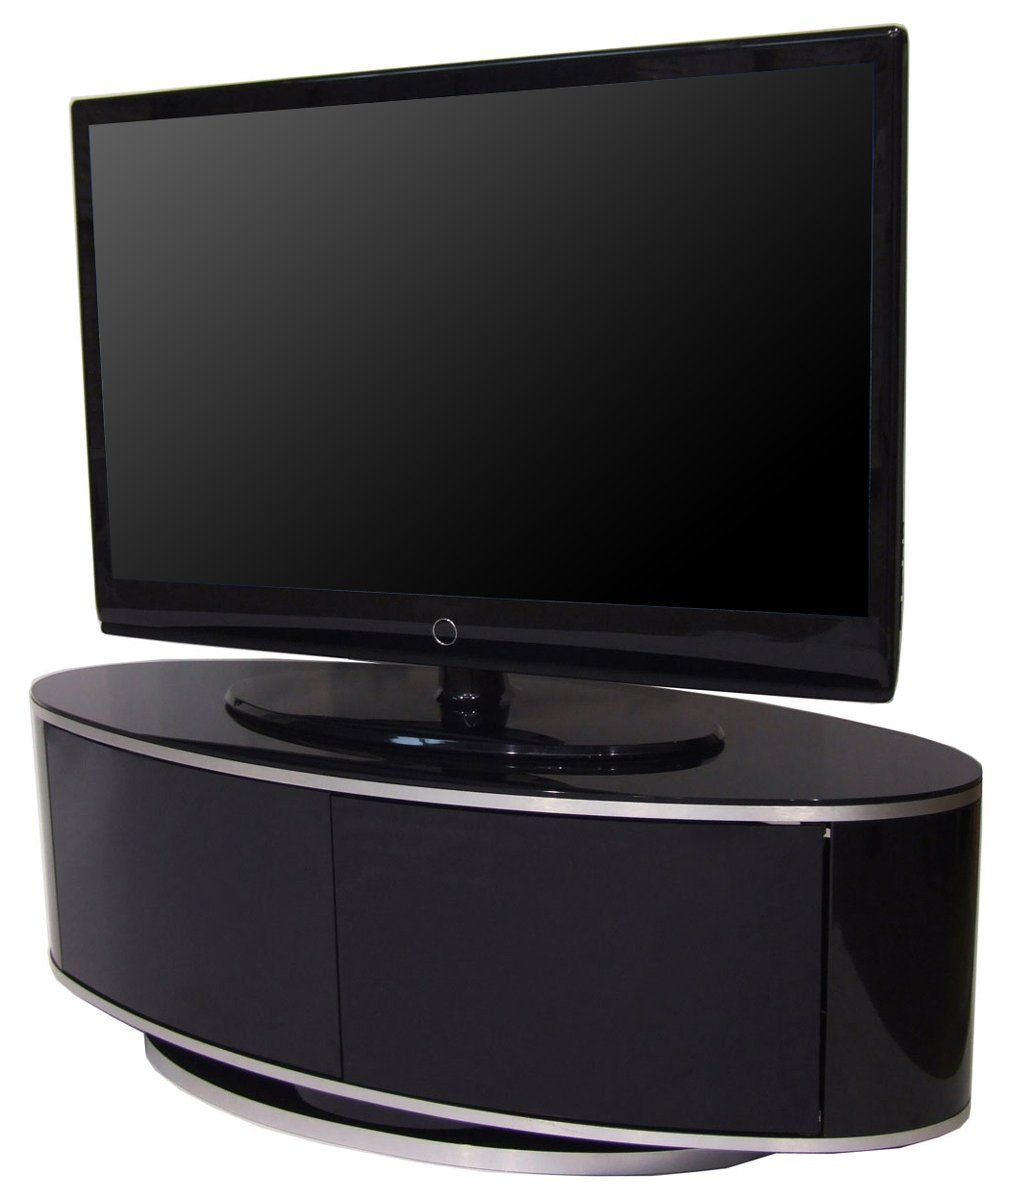 mda designs high gloss black oval tv stand with swivel base and remote friendly glass